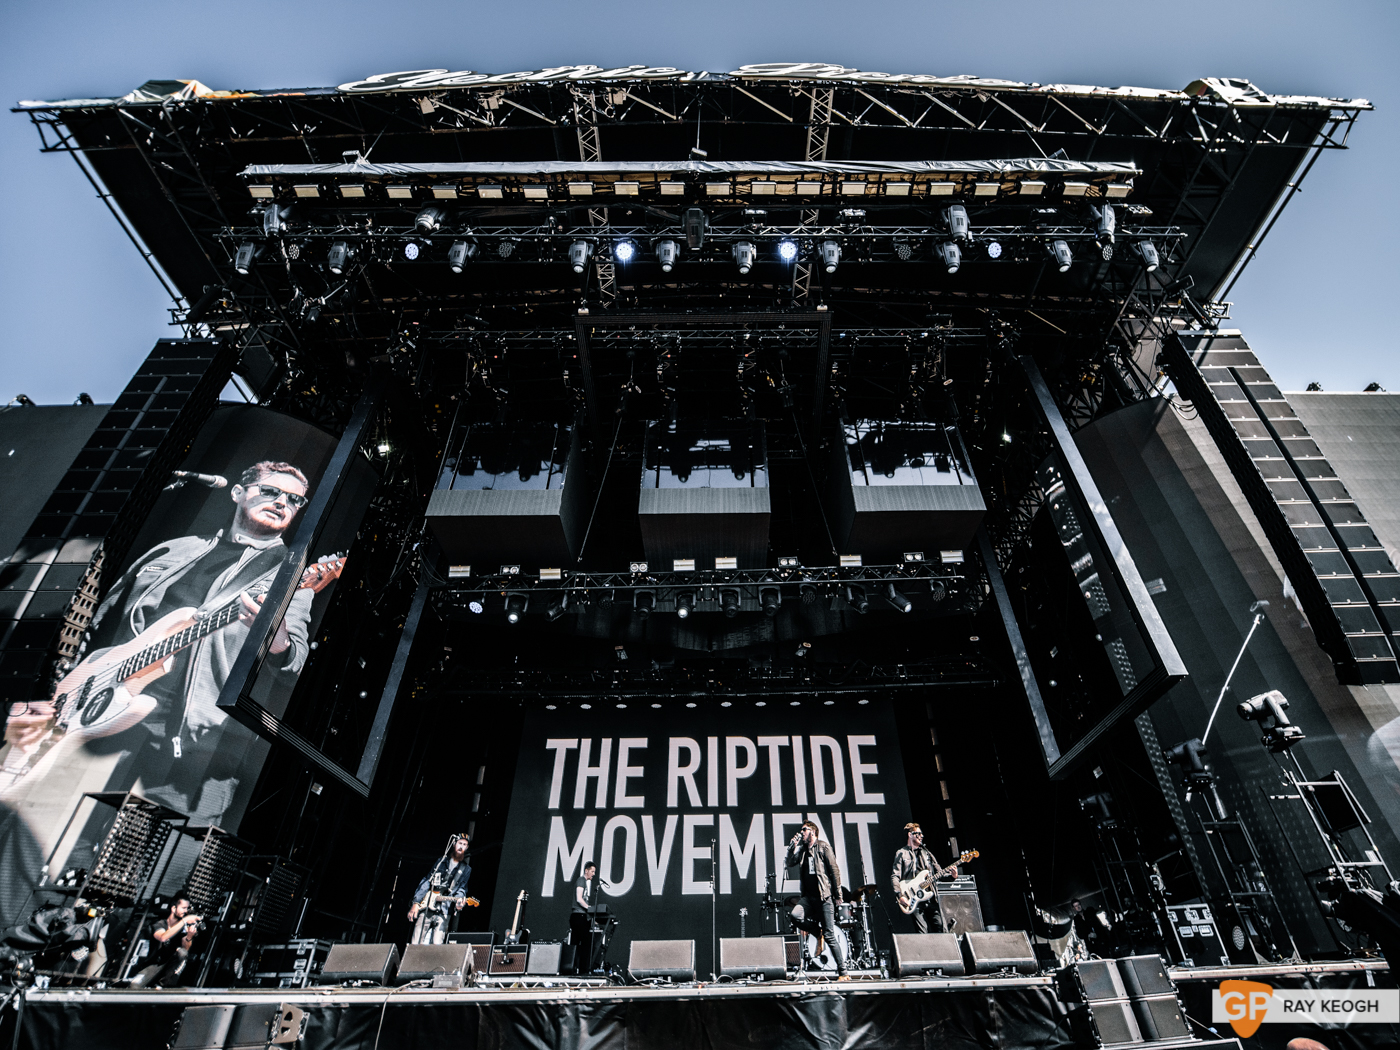 The Riptide Movement – Electric Picnic – Ray Keogh-5